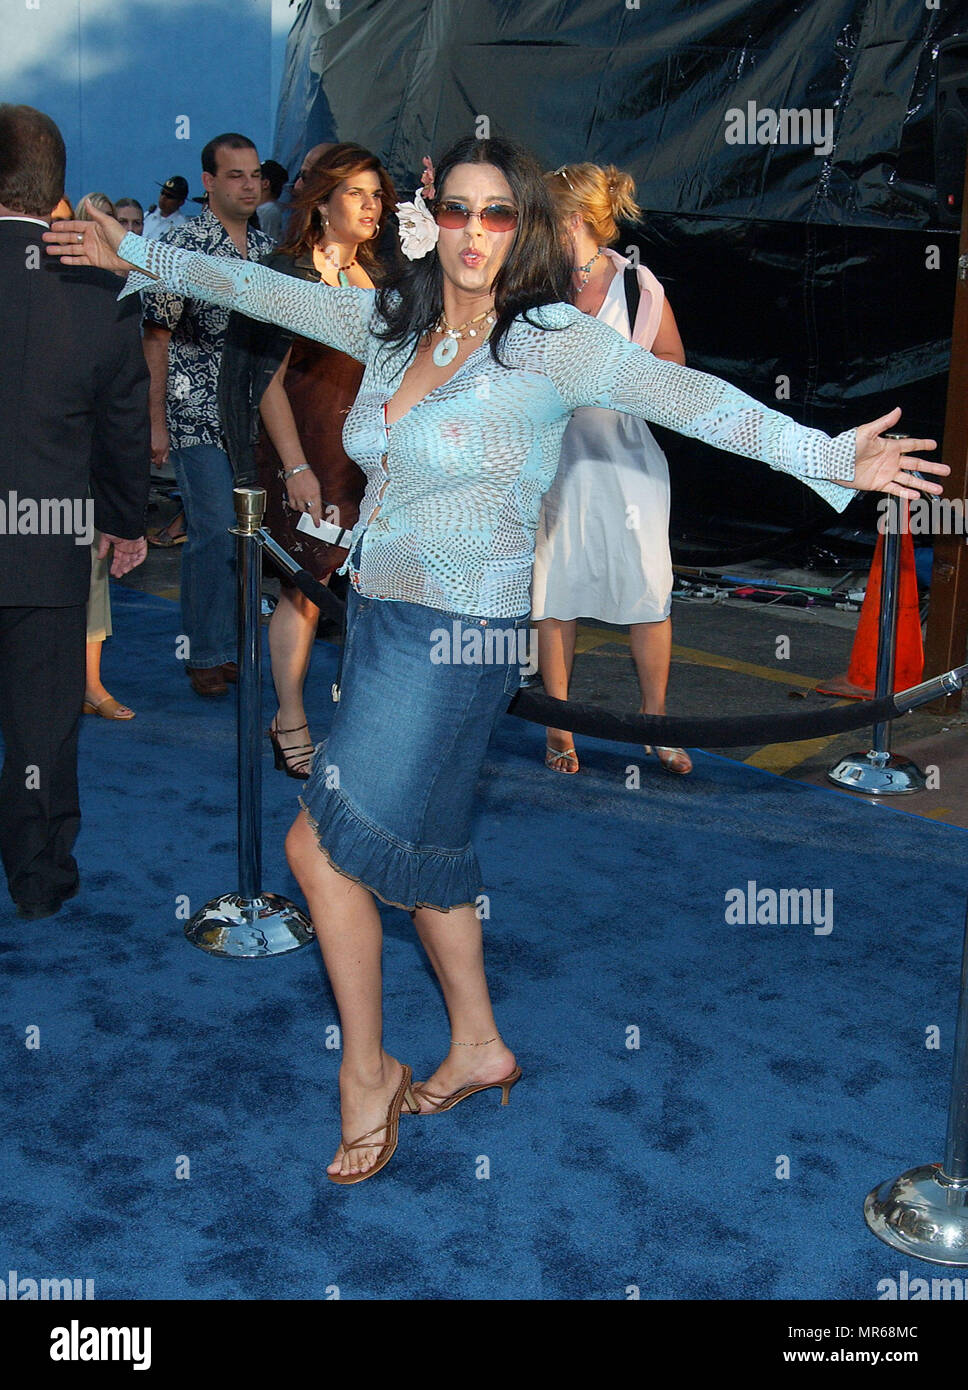 Rebekah Del Rio Arriving At The Blue Crush Premiere At The Universal Amphitheatre In Los Angeles August 8 2002 Delriorebekah30 Red Carpet Event Vertical Usa Film Industry Celebrities Photography Bestof Arts Culture